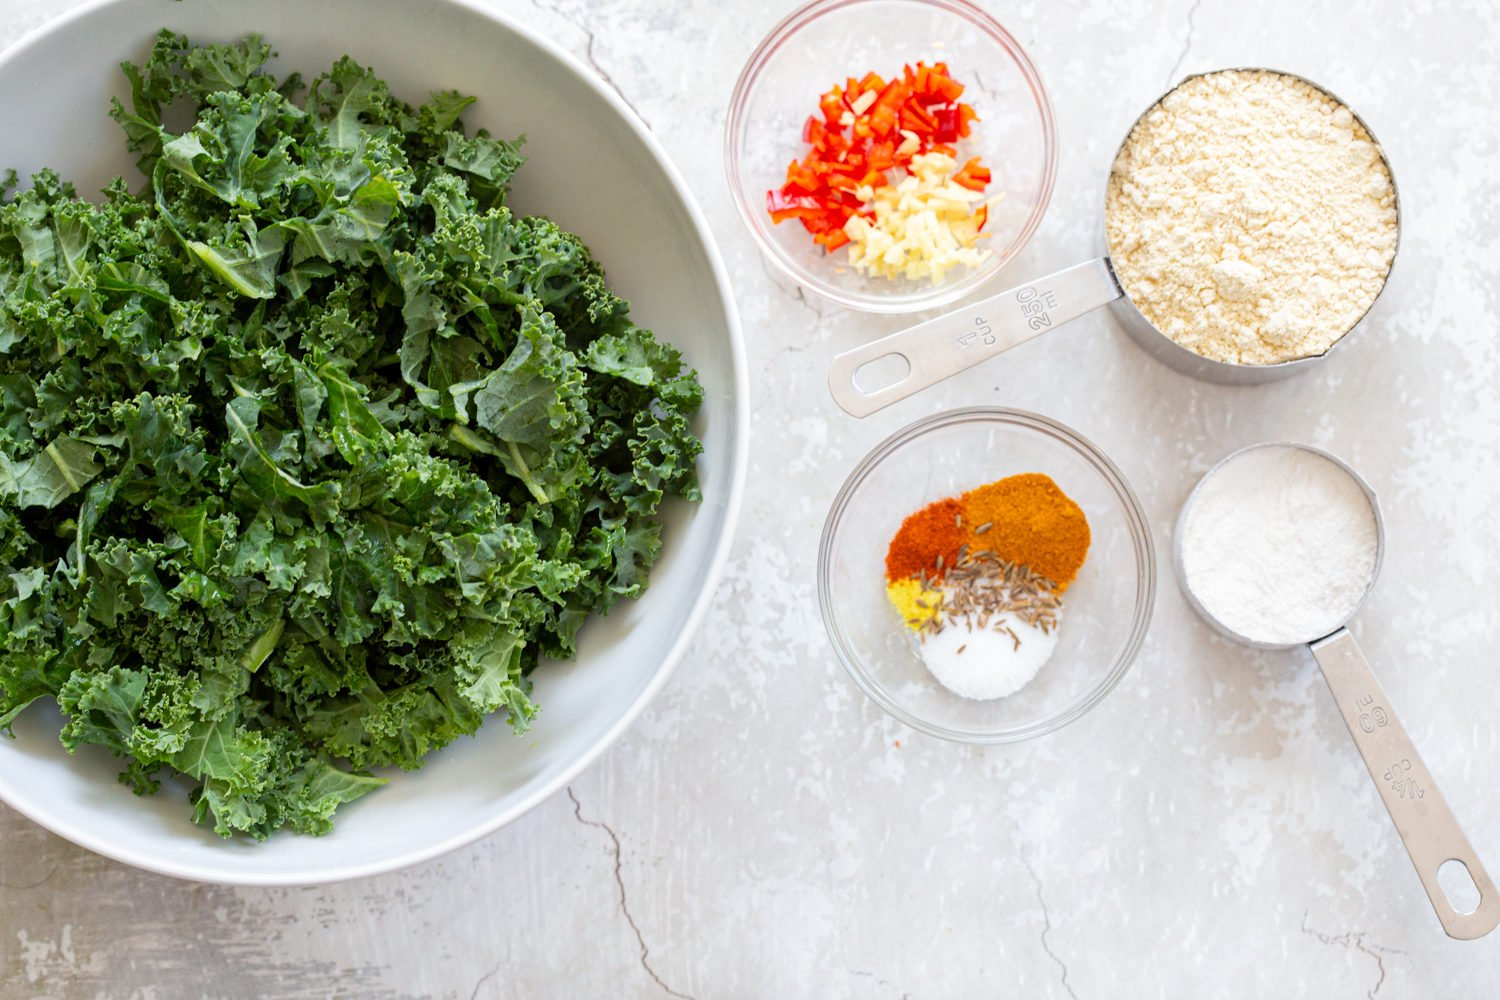 Ingredients laid out for Kale Pakora in bowls